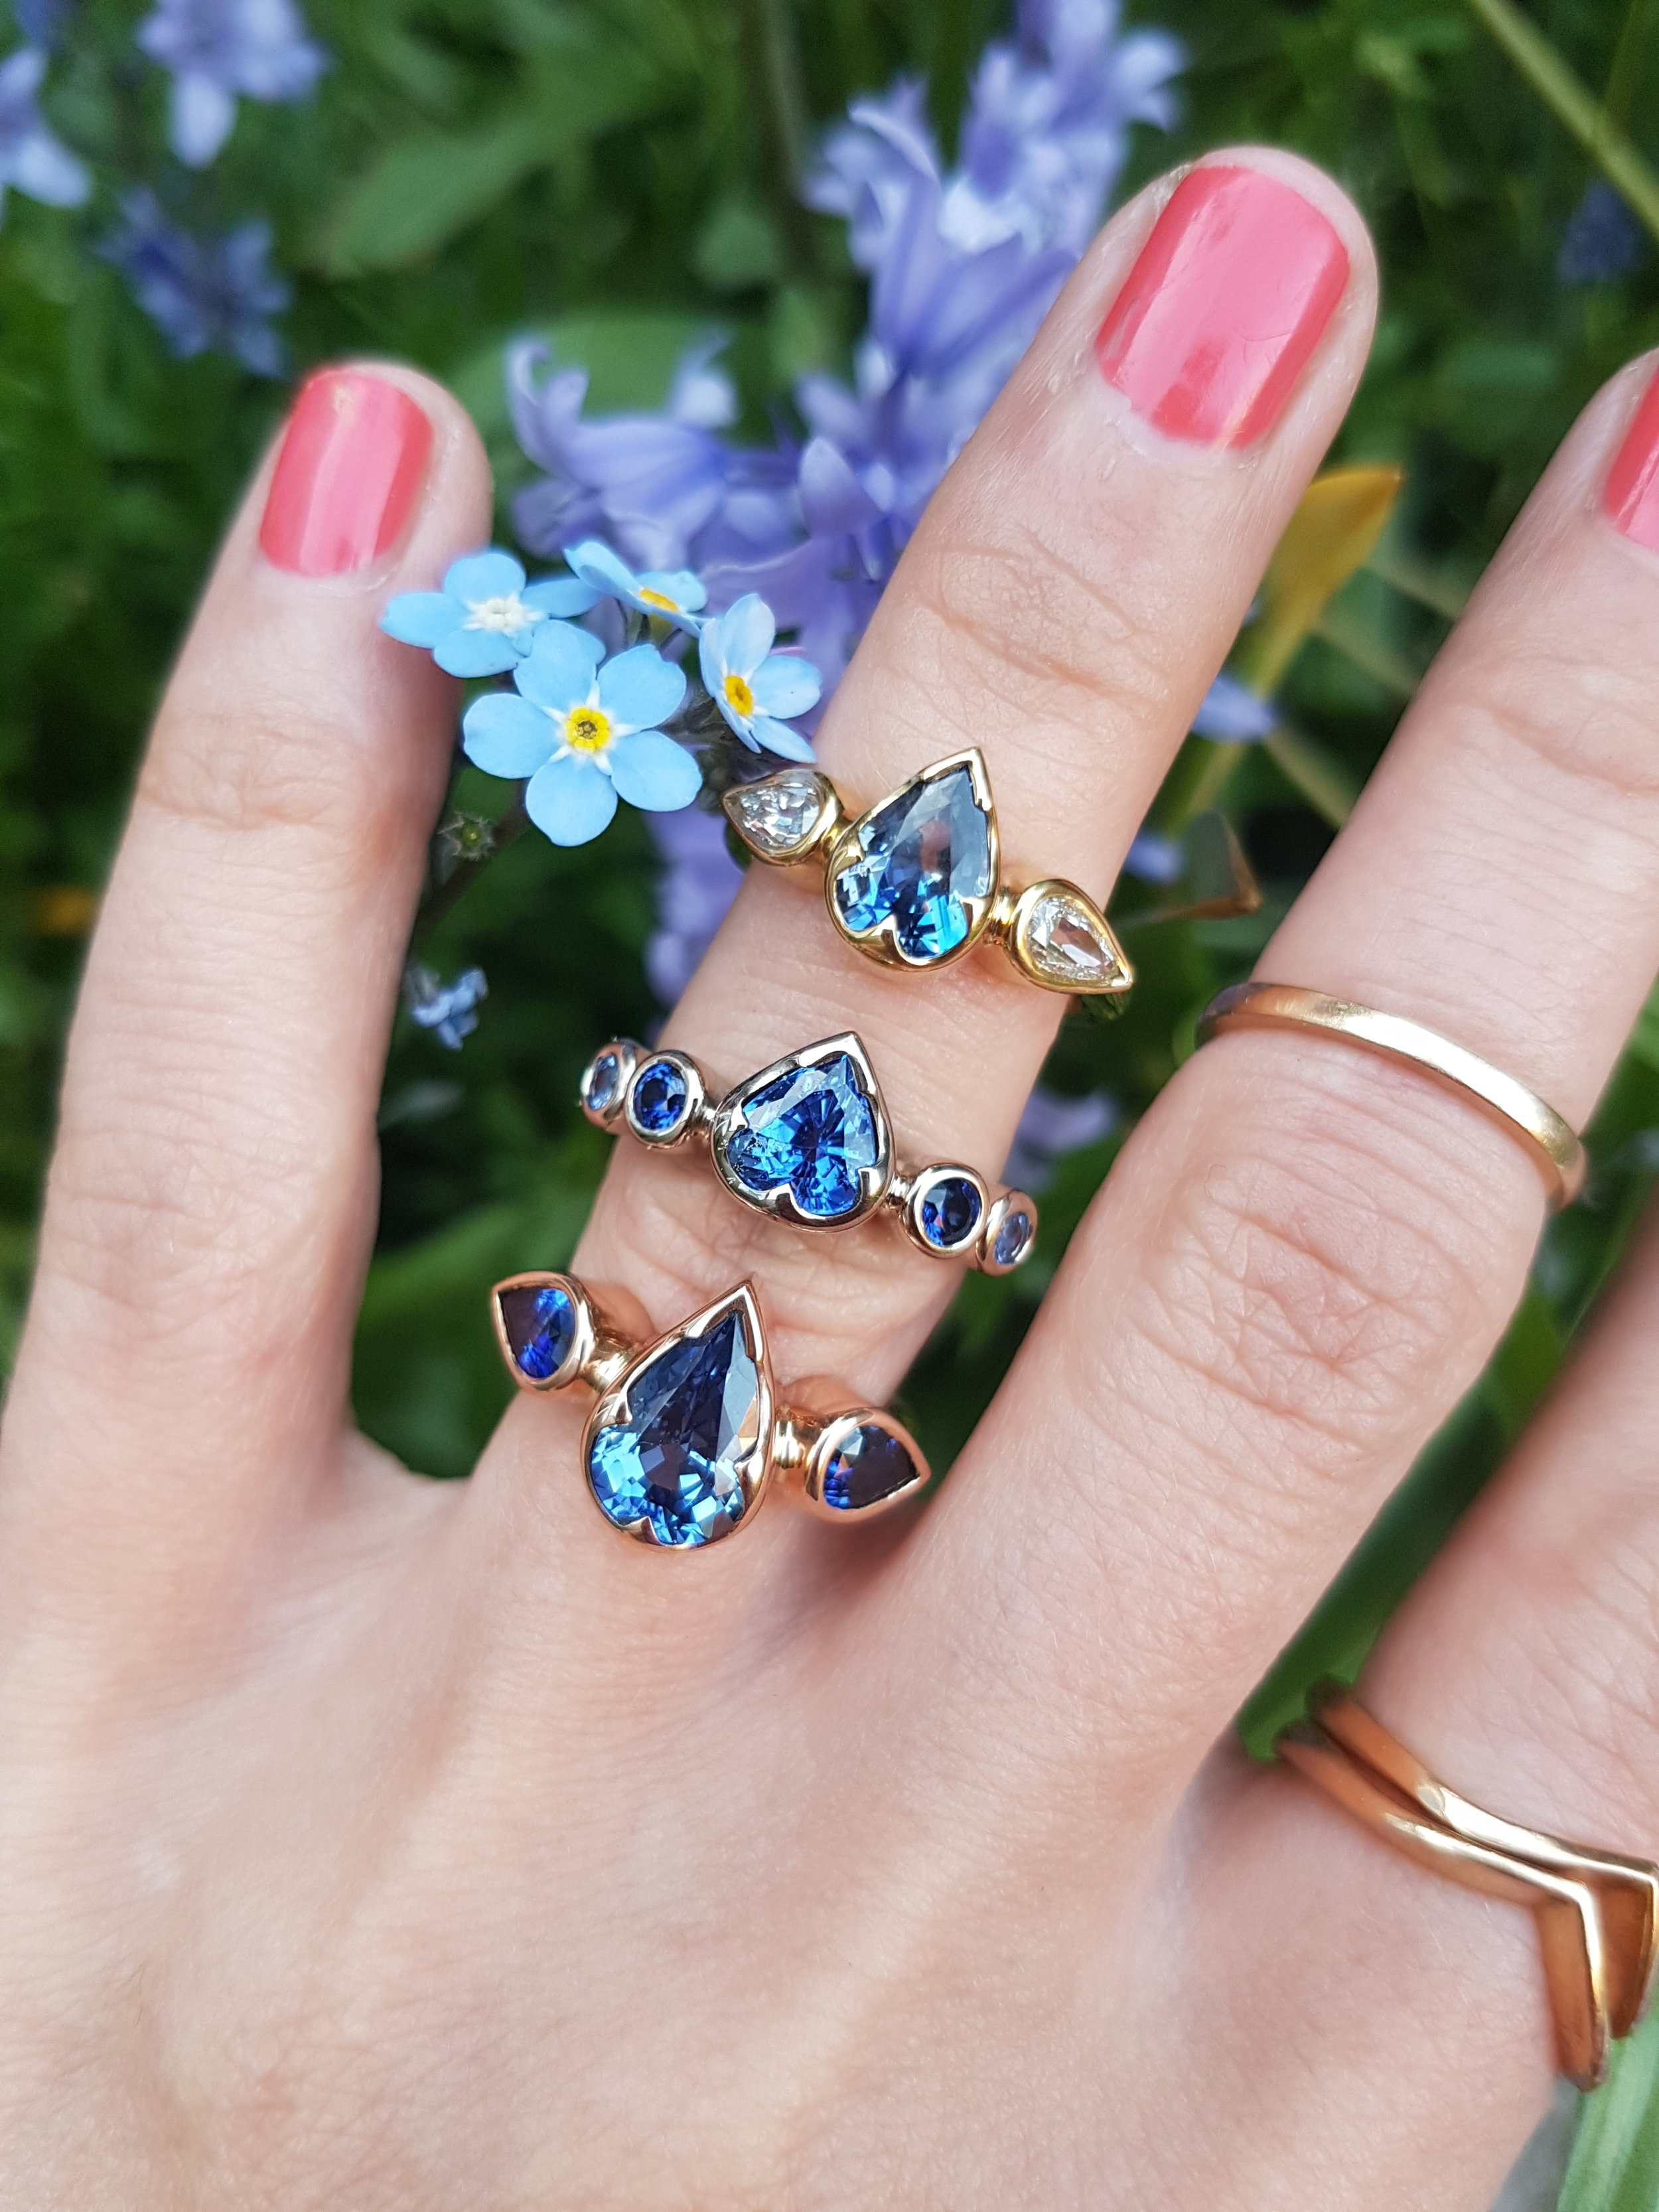 Sapphire Mimosa Rings by Fran Barker Design